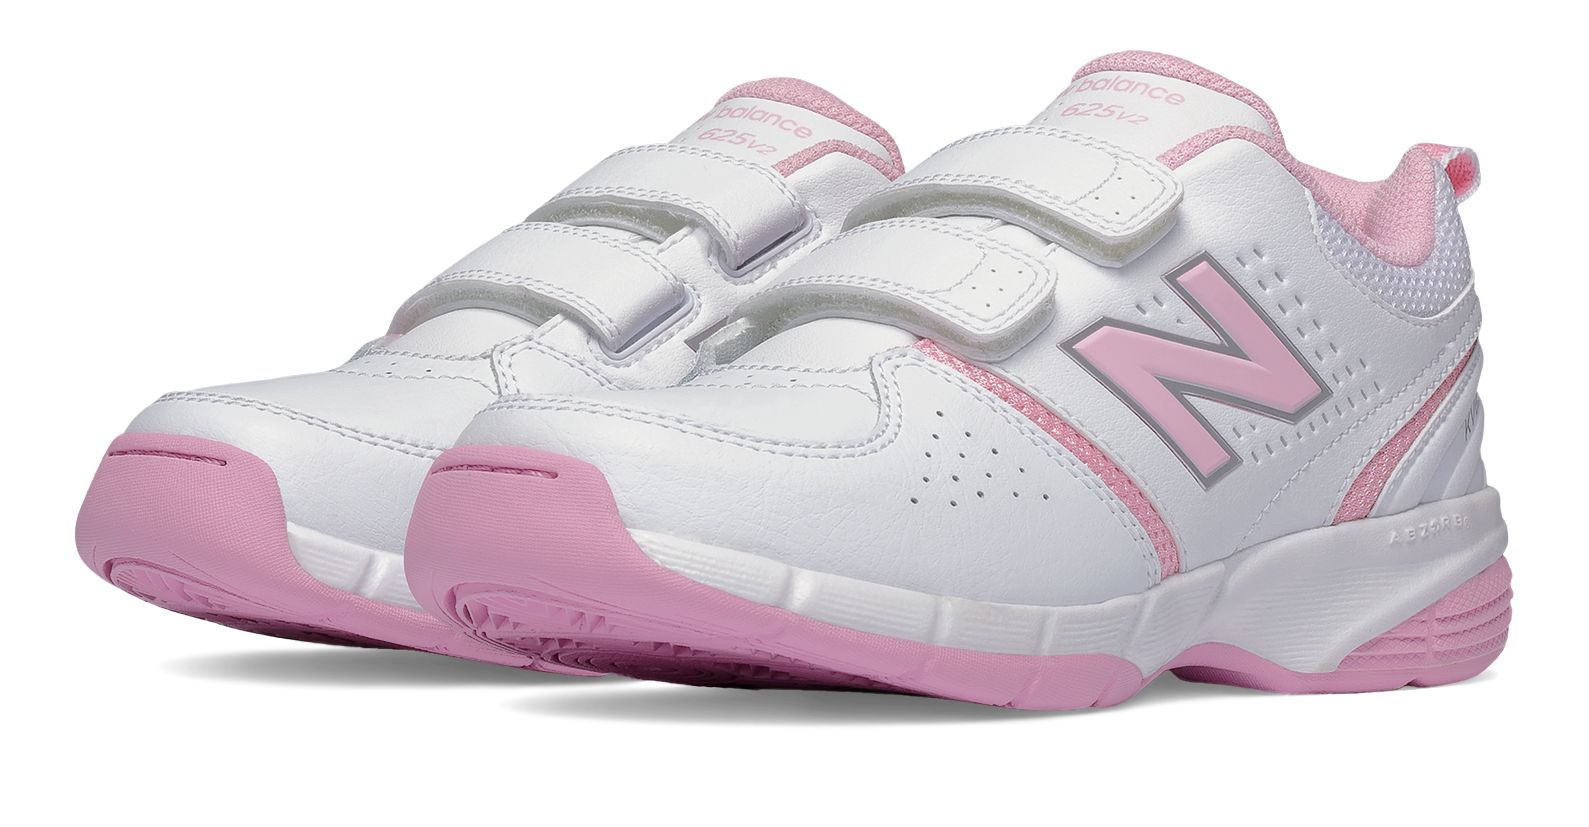 26a8ba1410ed Fitness Mania – New Balance 625 Hook and Loop Girl s Primary School Cross  Training Shoes